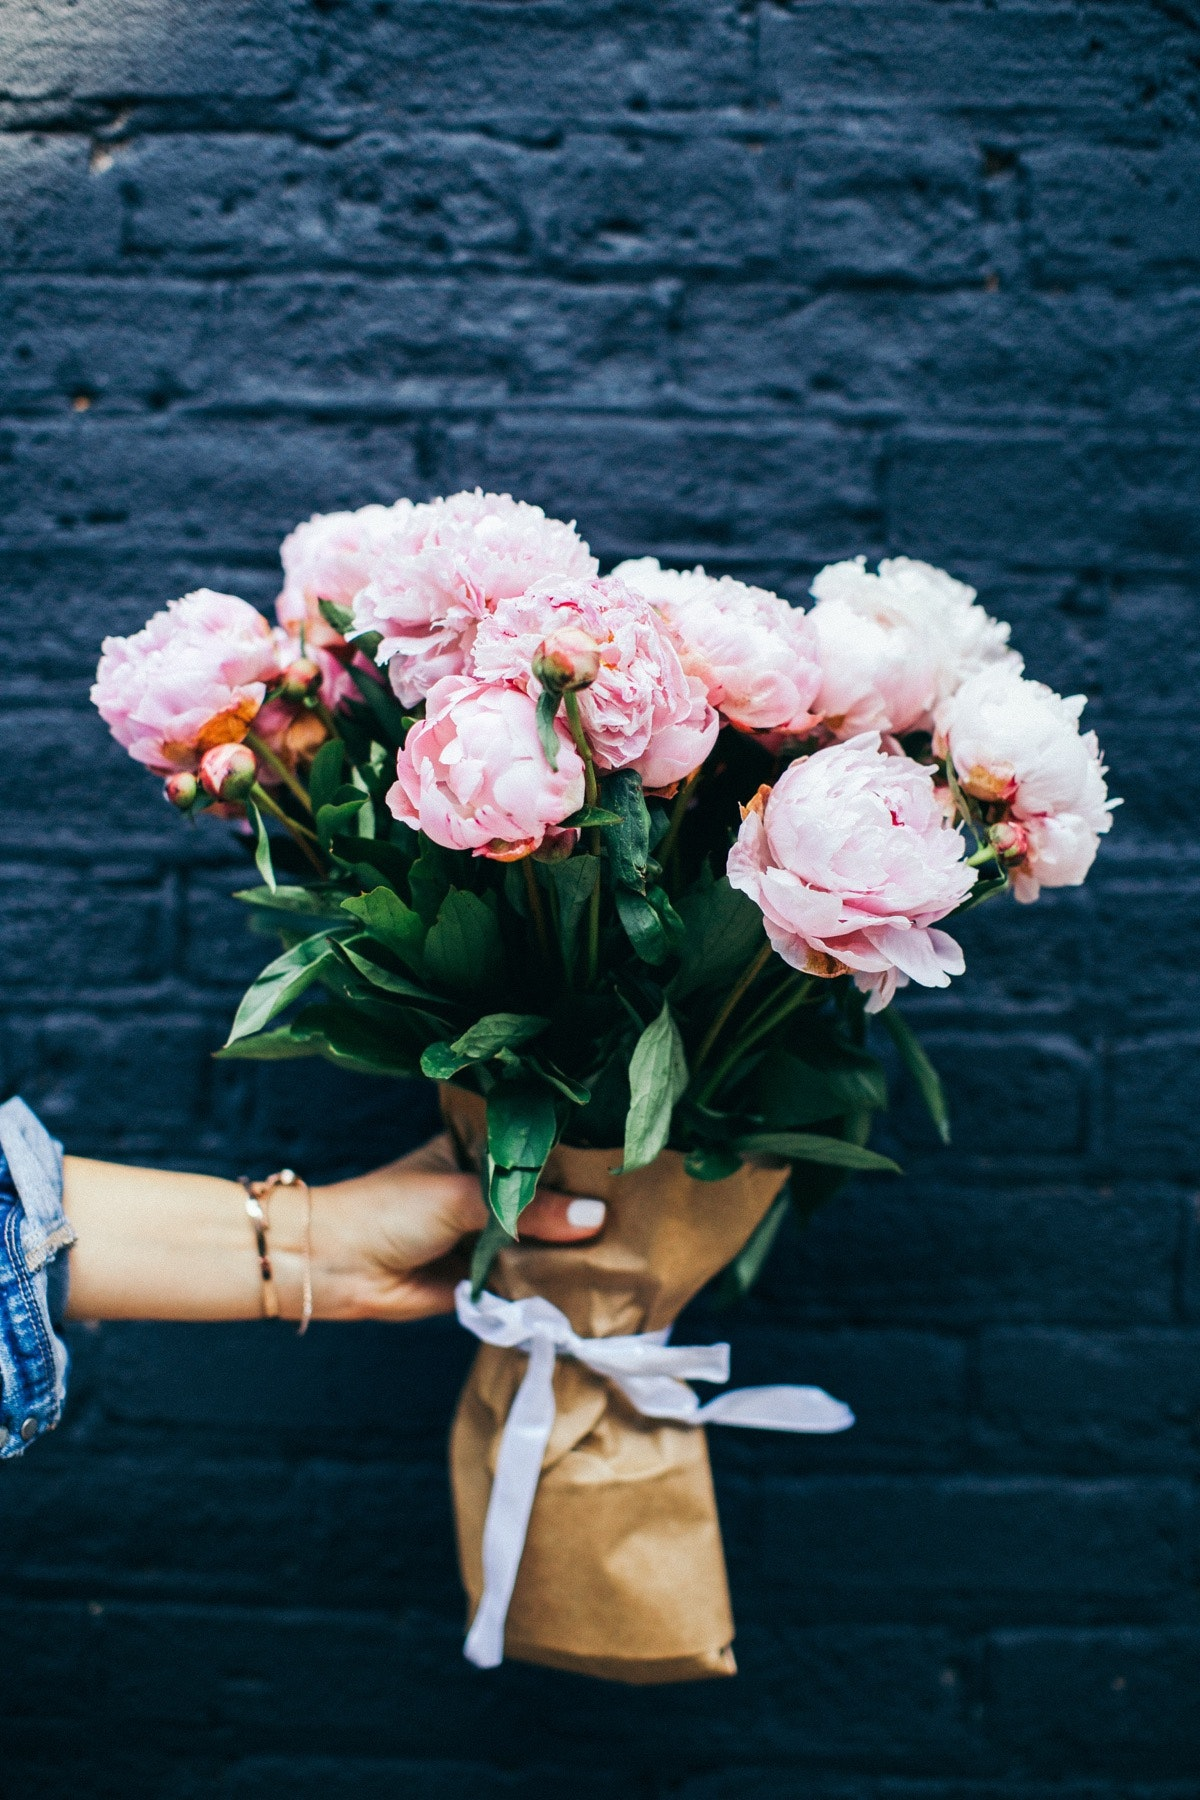 1000 engaging flower bouquet photos pexels free stock photos related searches bouquet flowers flower flower arrangement izmirmasajfo